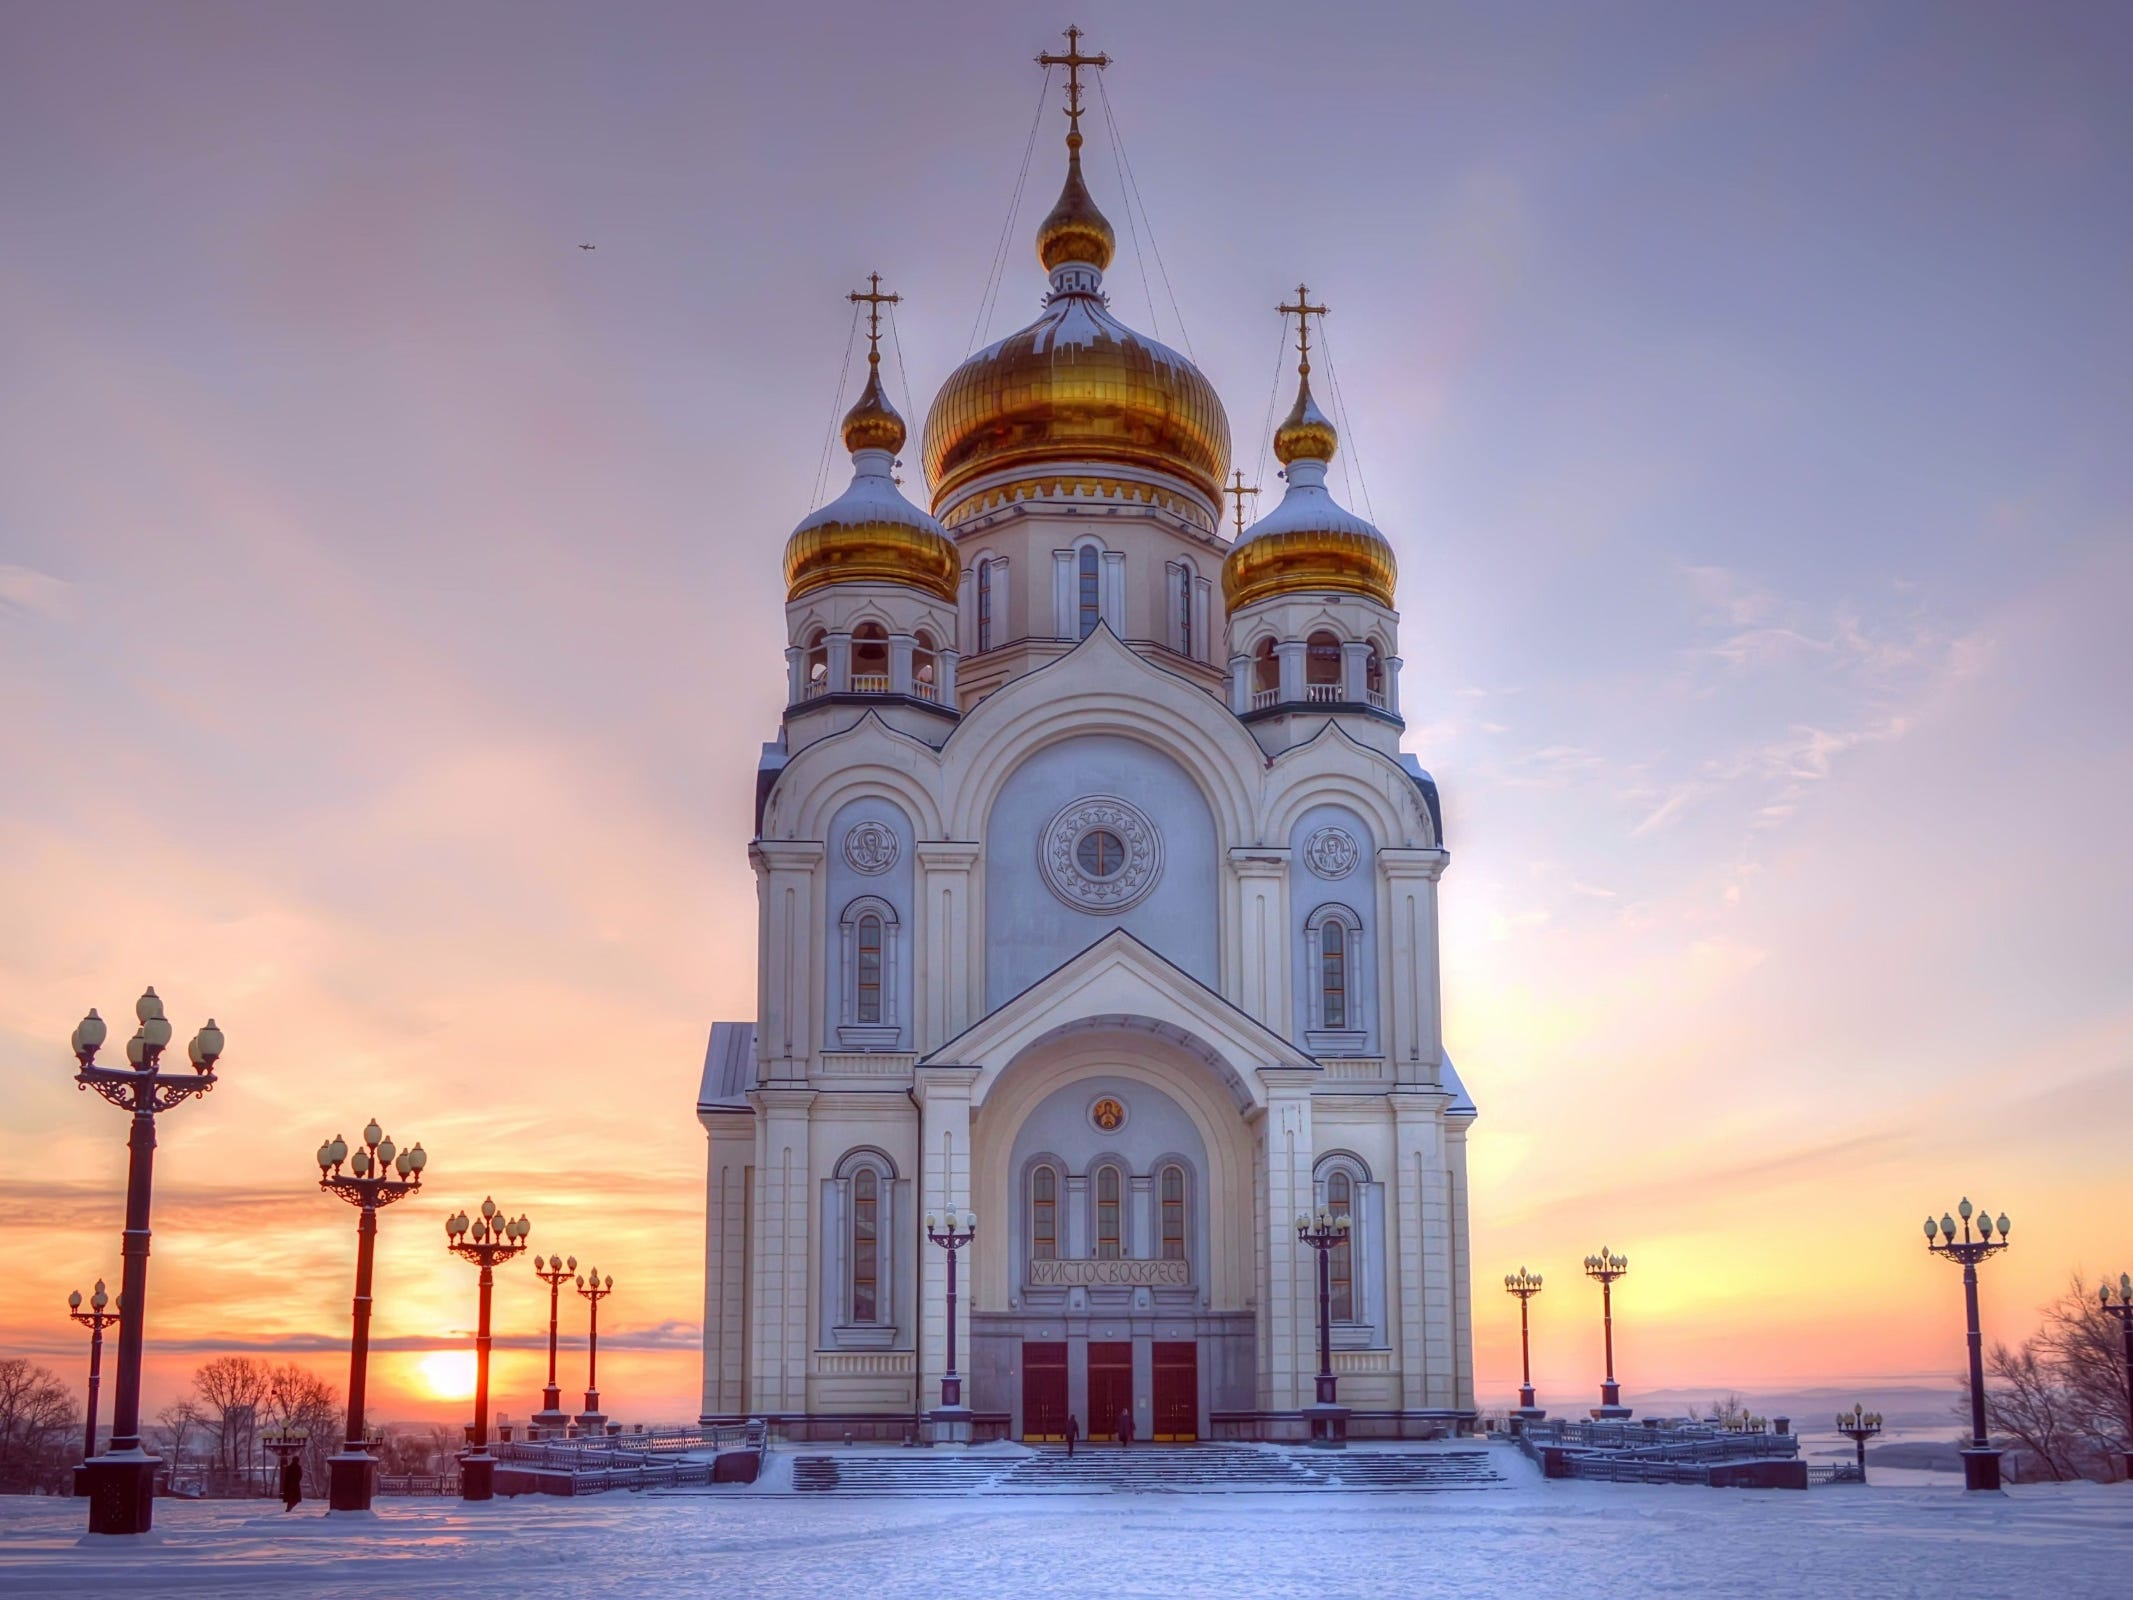 No. 6 on the top 10 list of regions to visit in 2019 is the Russian Far East. Volcanoes, wildlife, raging rivers, indigenous cultures and diverse cities connected by the Trans-Siberian Railway: The Far East is Russia's most exciting region.